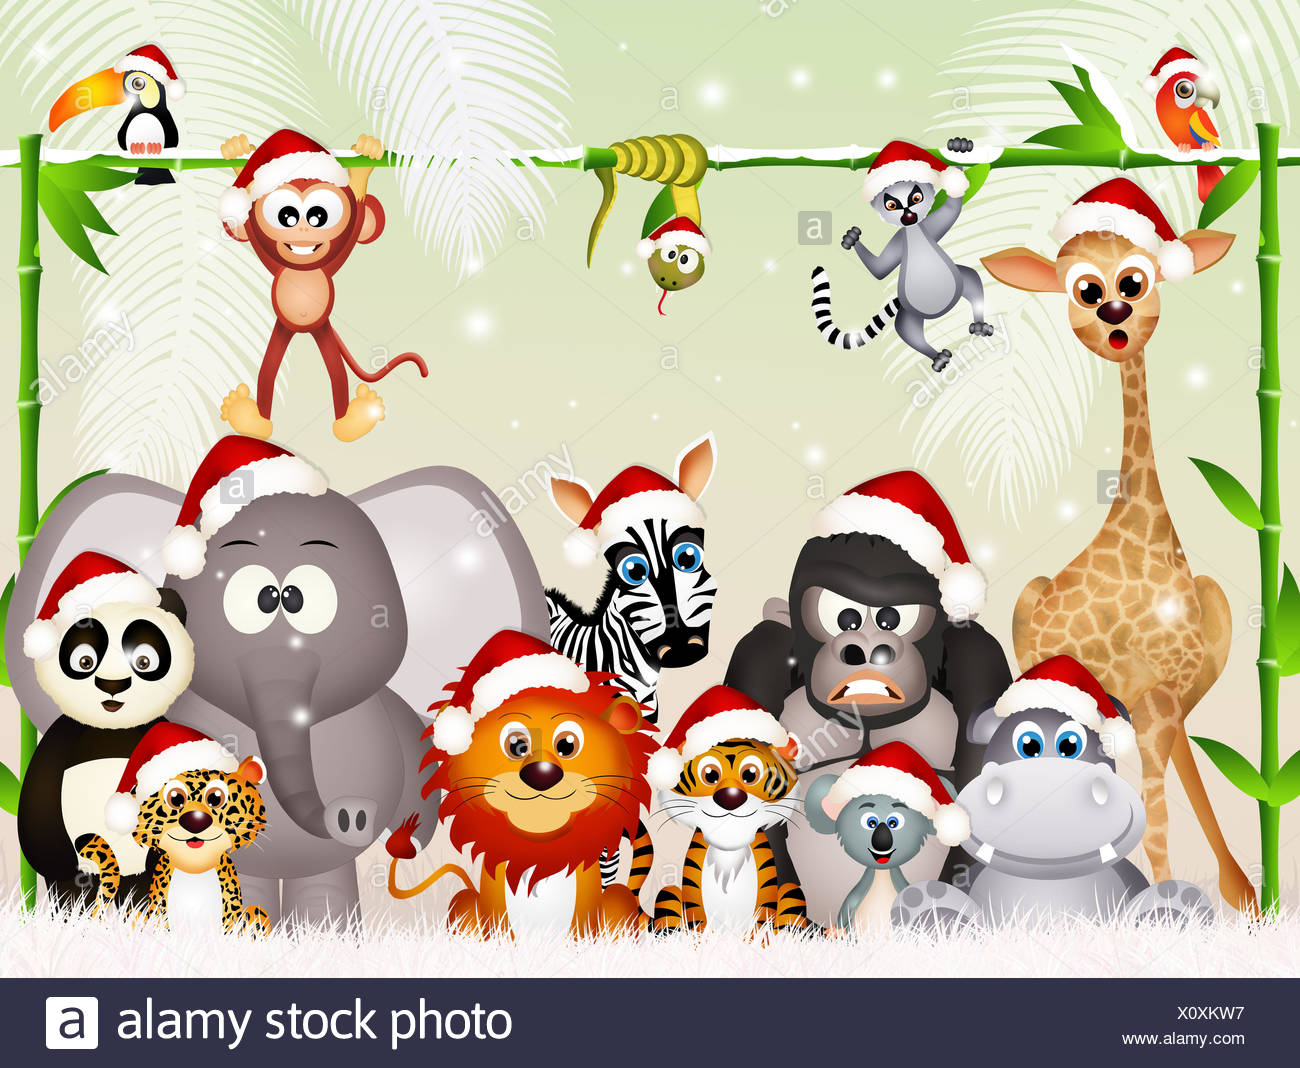 Funny Animals Christmas Stock Photos Funny Animals Christmas Stock